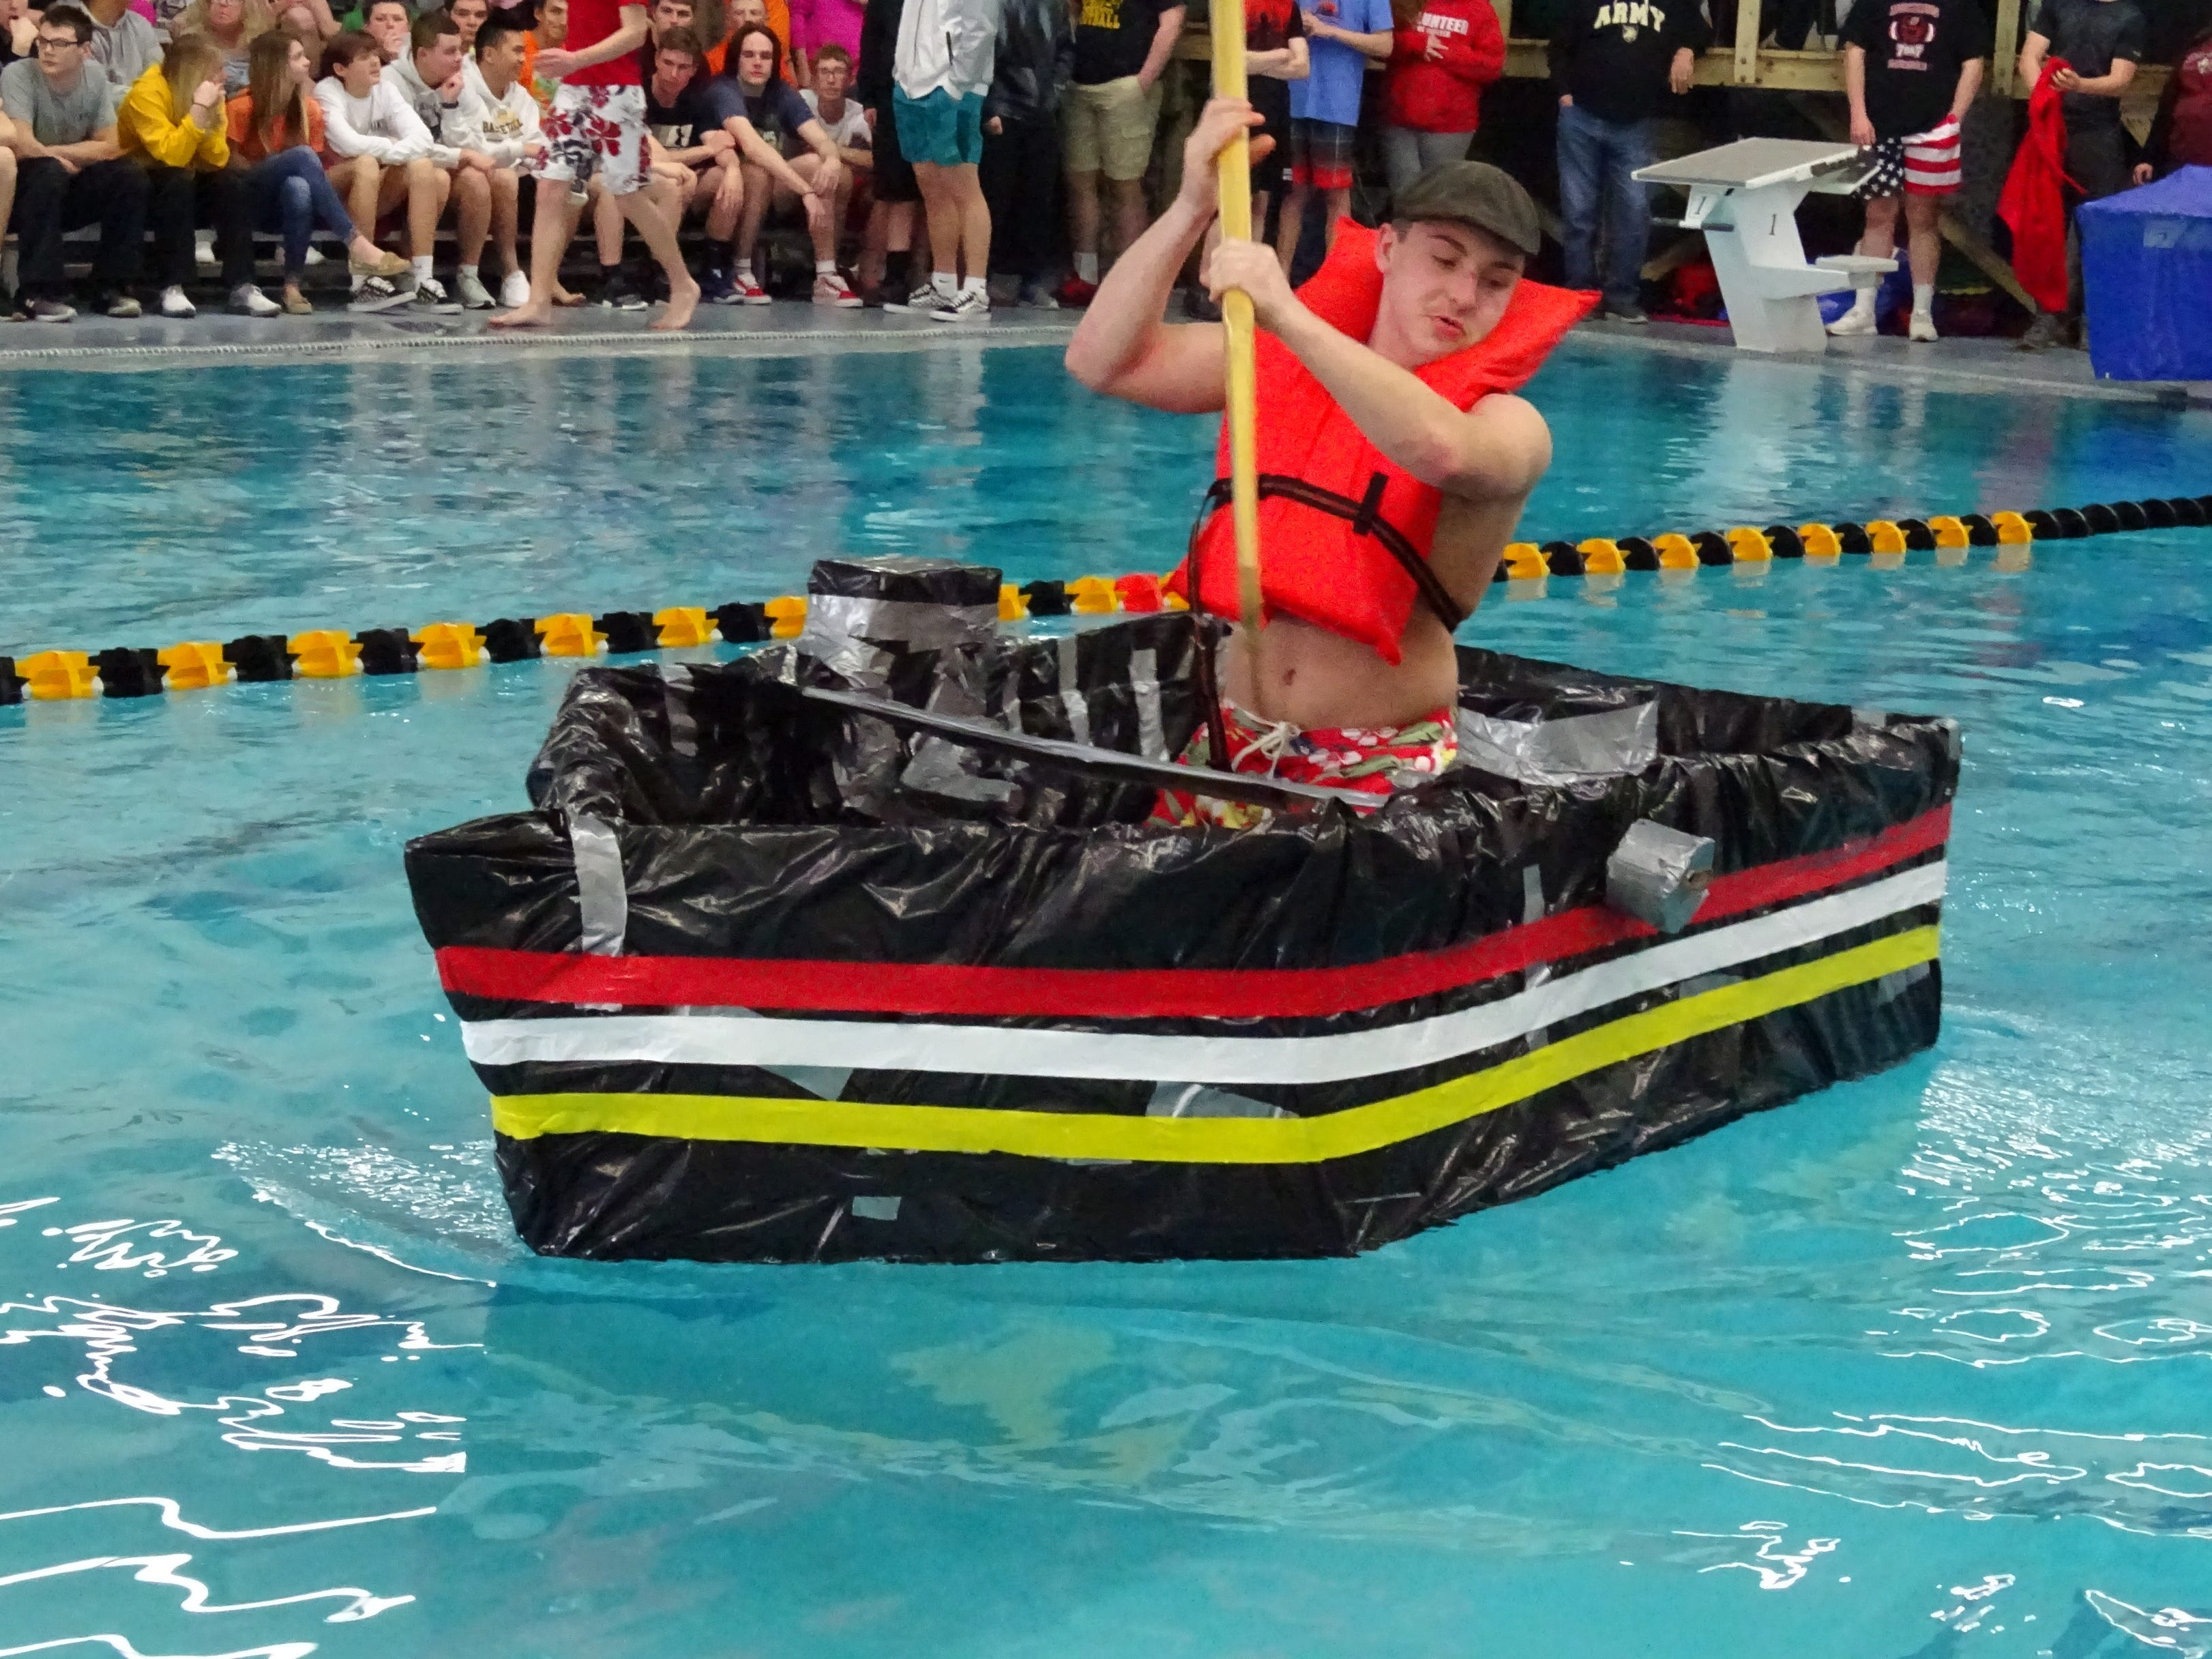 Students from six area school districts competed in the Cardboard Boat Regatta at Colonel Crawford High School on Wednesday.